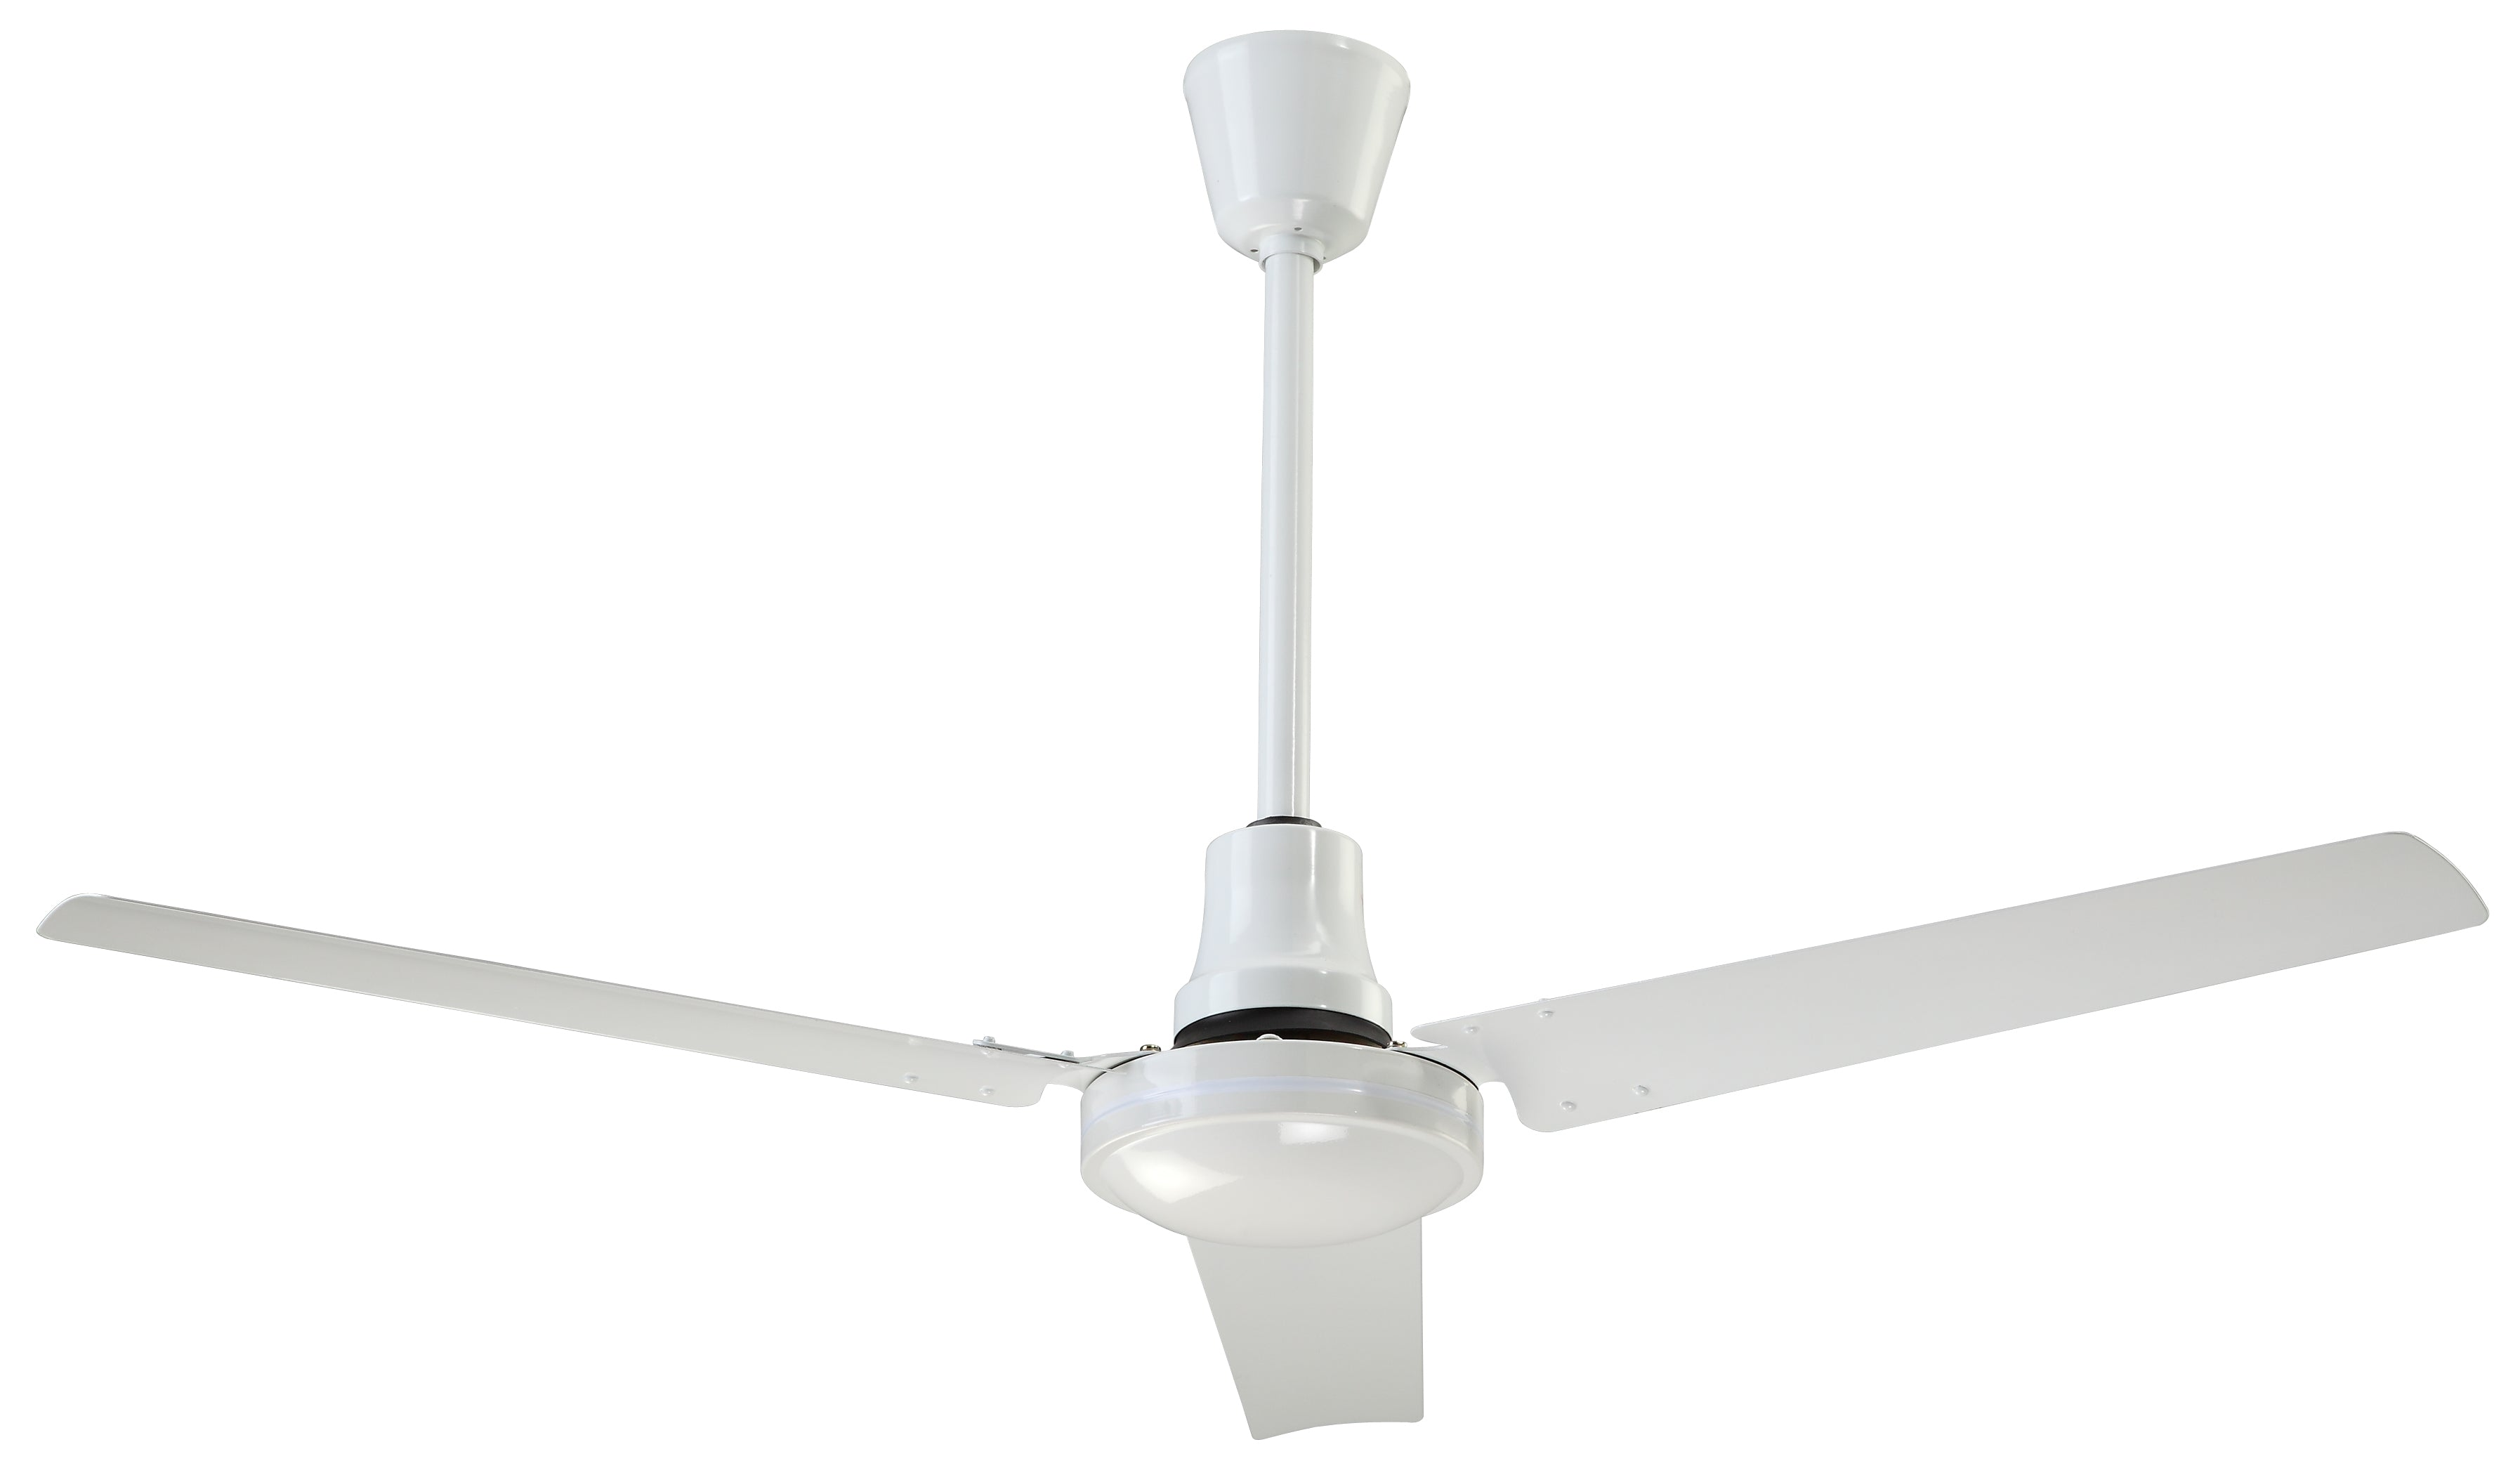 outdoor-ul507-rated-fans-outdoor-ceiling-fans.jpg